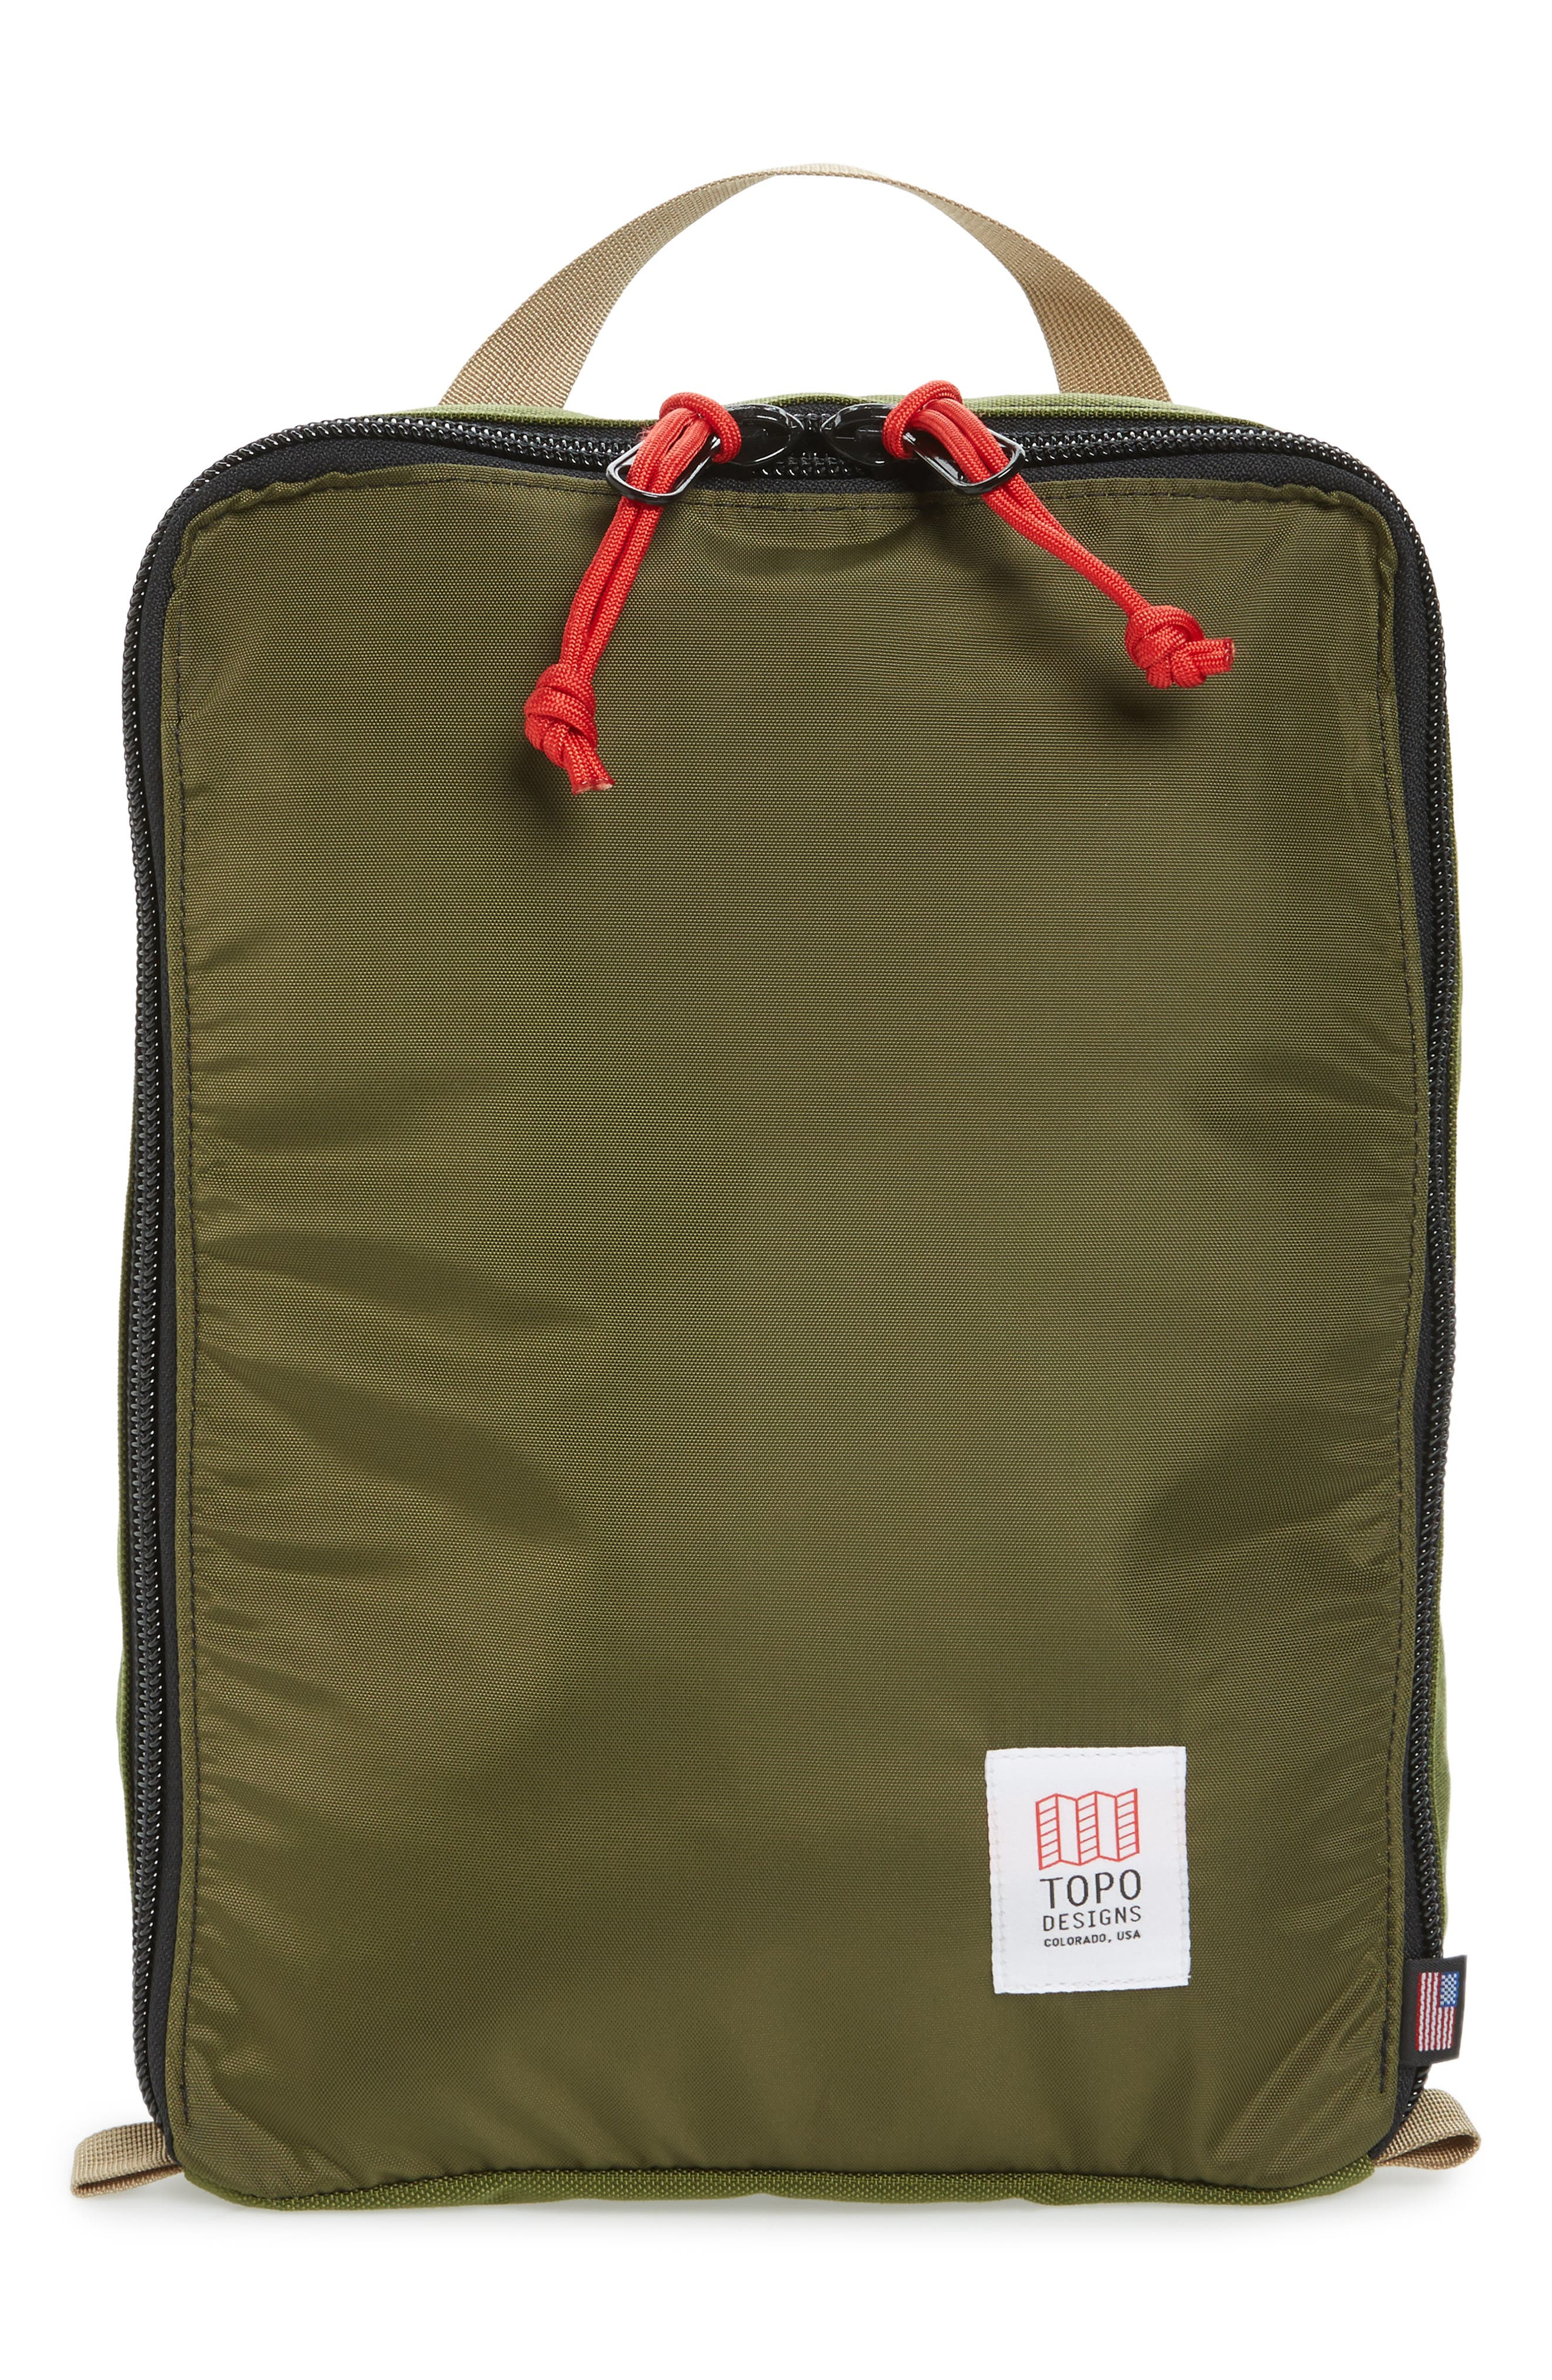 TOPO DESIGNS PACK BAGS TOTE - GREEN